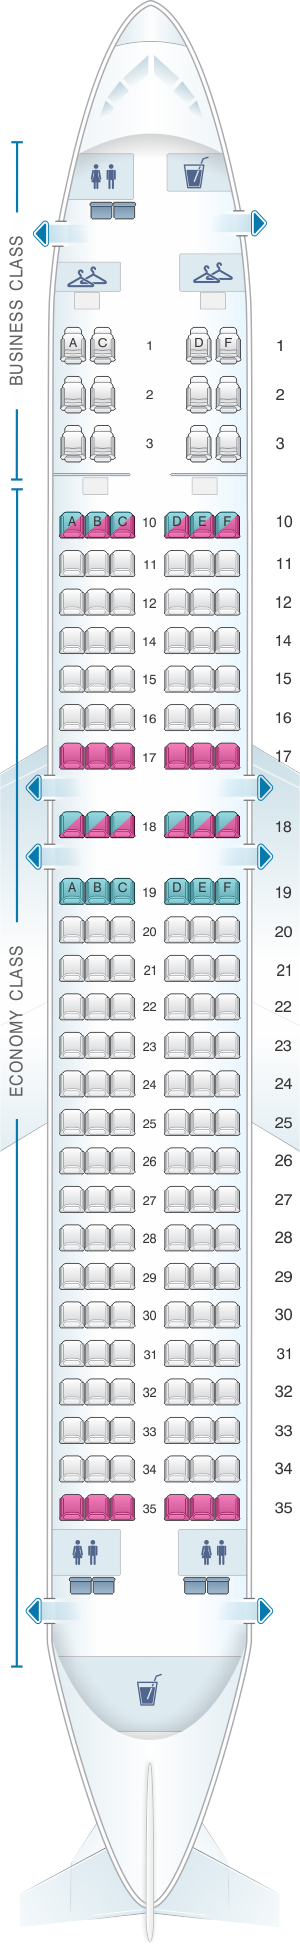 Seat map for Oman Air Boeing B737 MAX 8